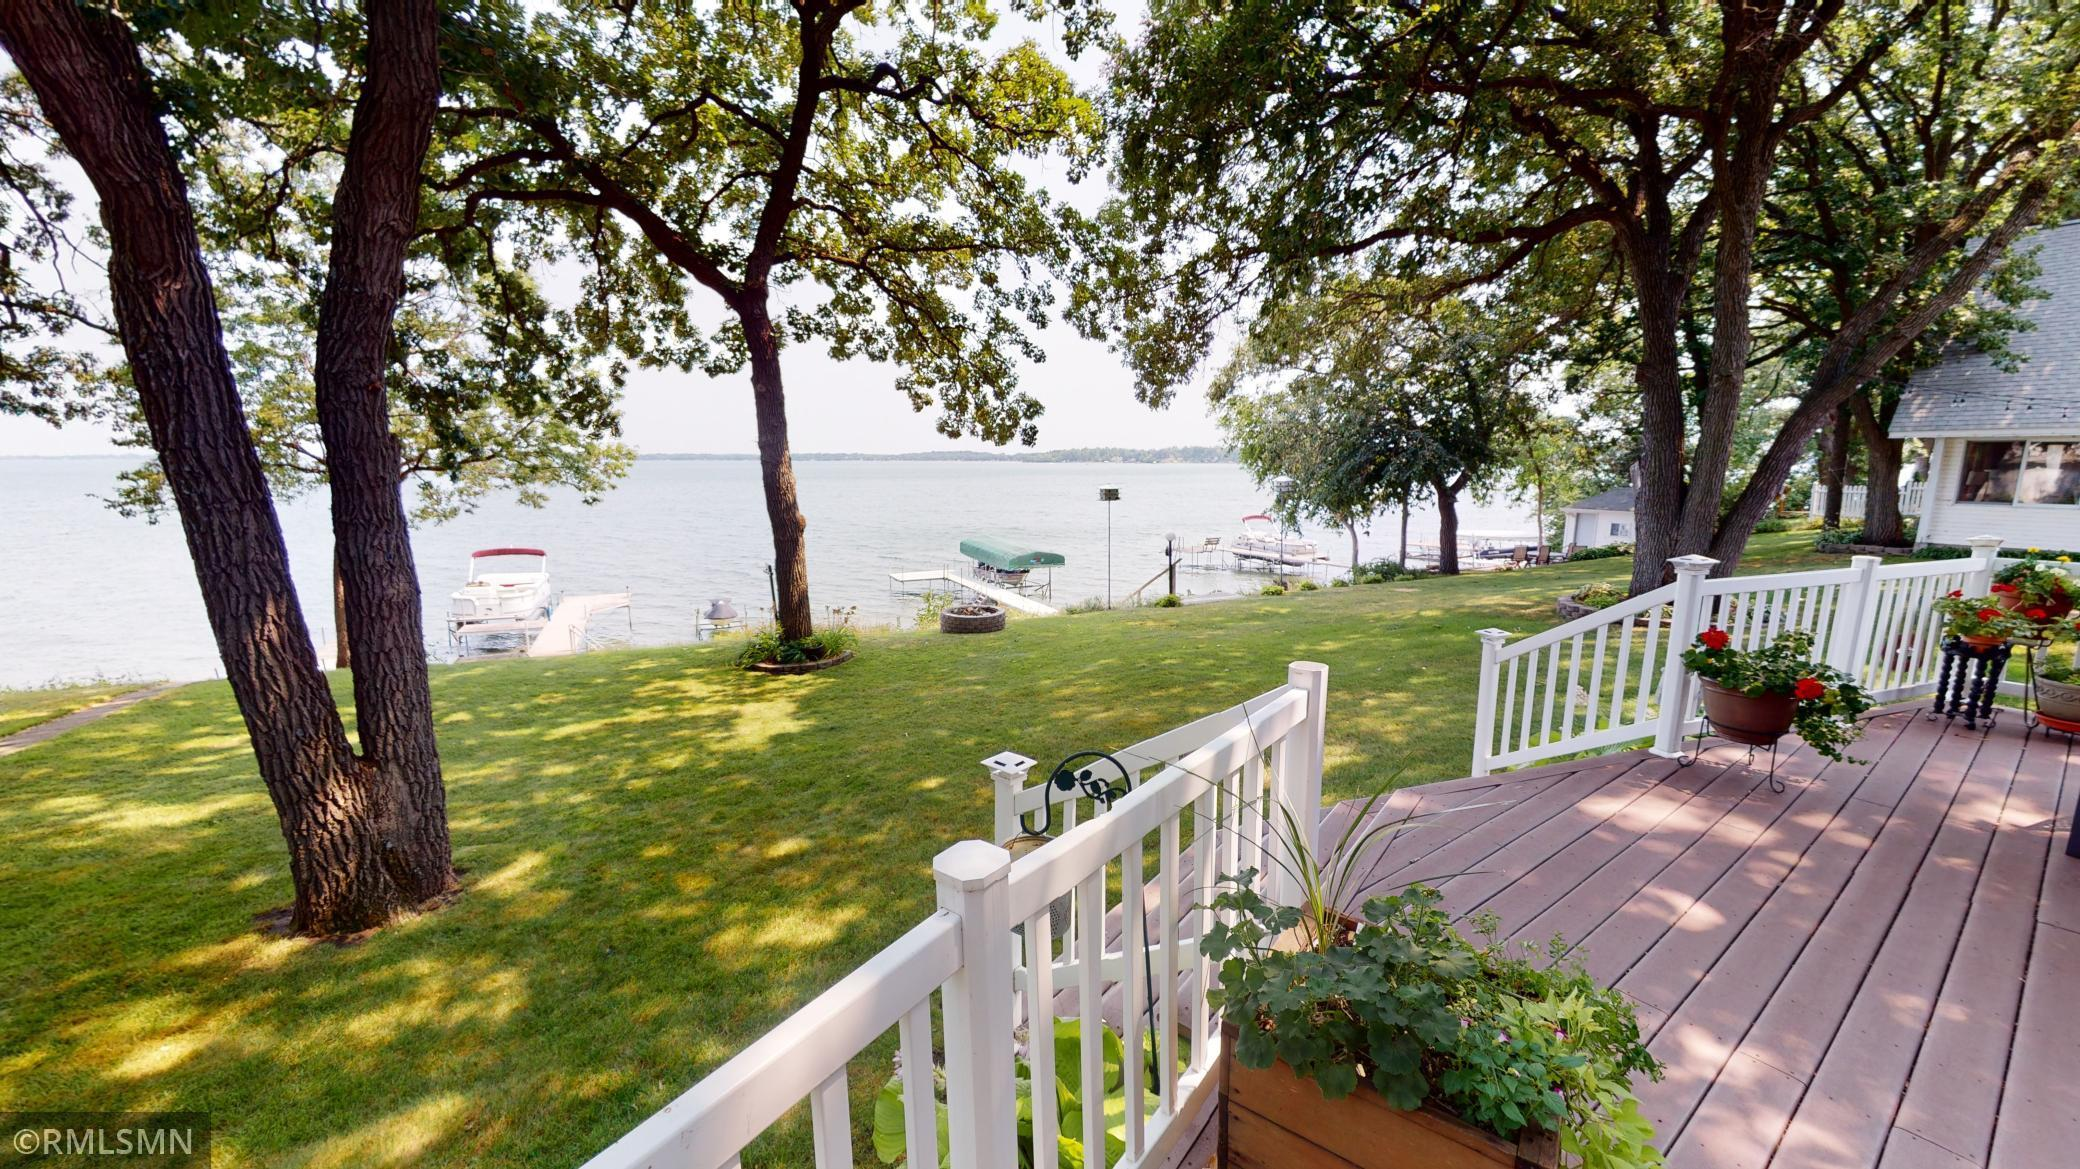 Make your lake home dreams a reality with this beautiful 4 bedroom, 3 bath home with 50 feet of amazing shoreline on Green Lake. Main level includes kitchen with breakfast area, formal dining area, gas fireplace in living room with wonderful lake views. Upper level features the master bedroom with walk-in closet and master bath, remaining 3 bedrooms, laundry, additional bathroom and office space with view overlooking the lake. Property also includes spacious back deck ready for entertaining, enjoying lake views and activities plus attached 2 stall garage.